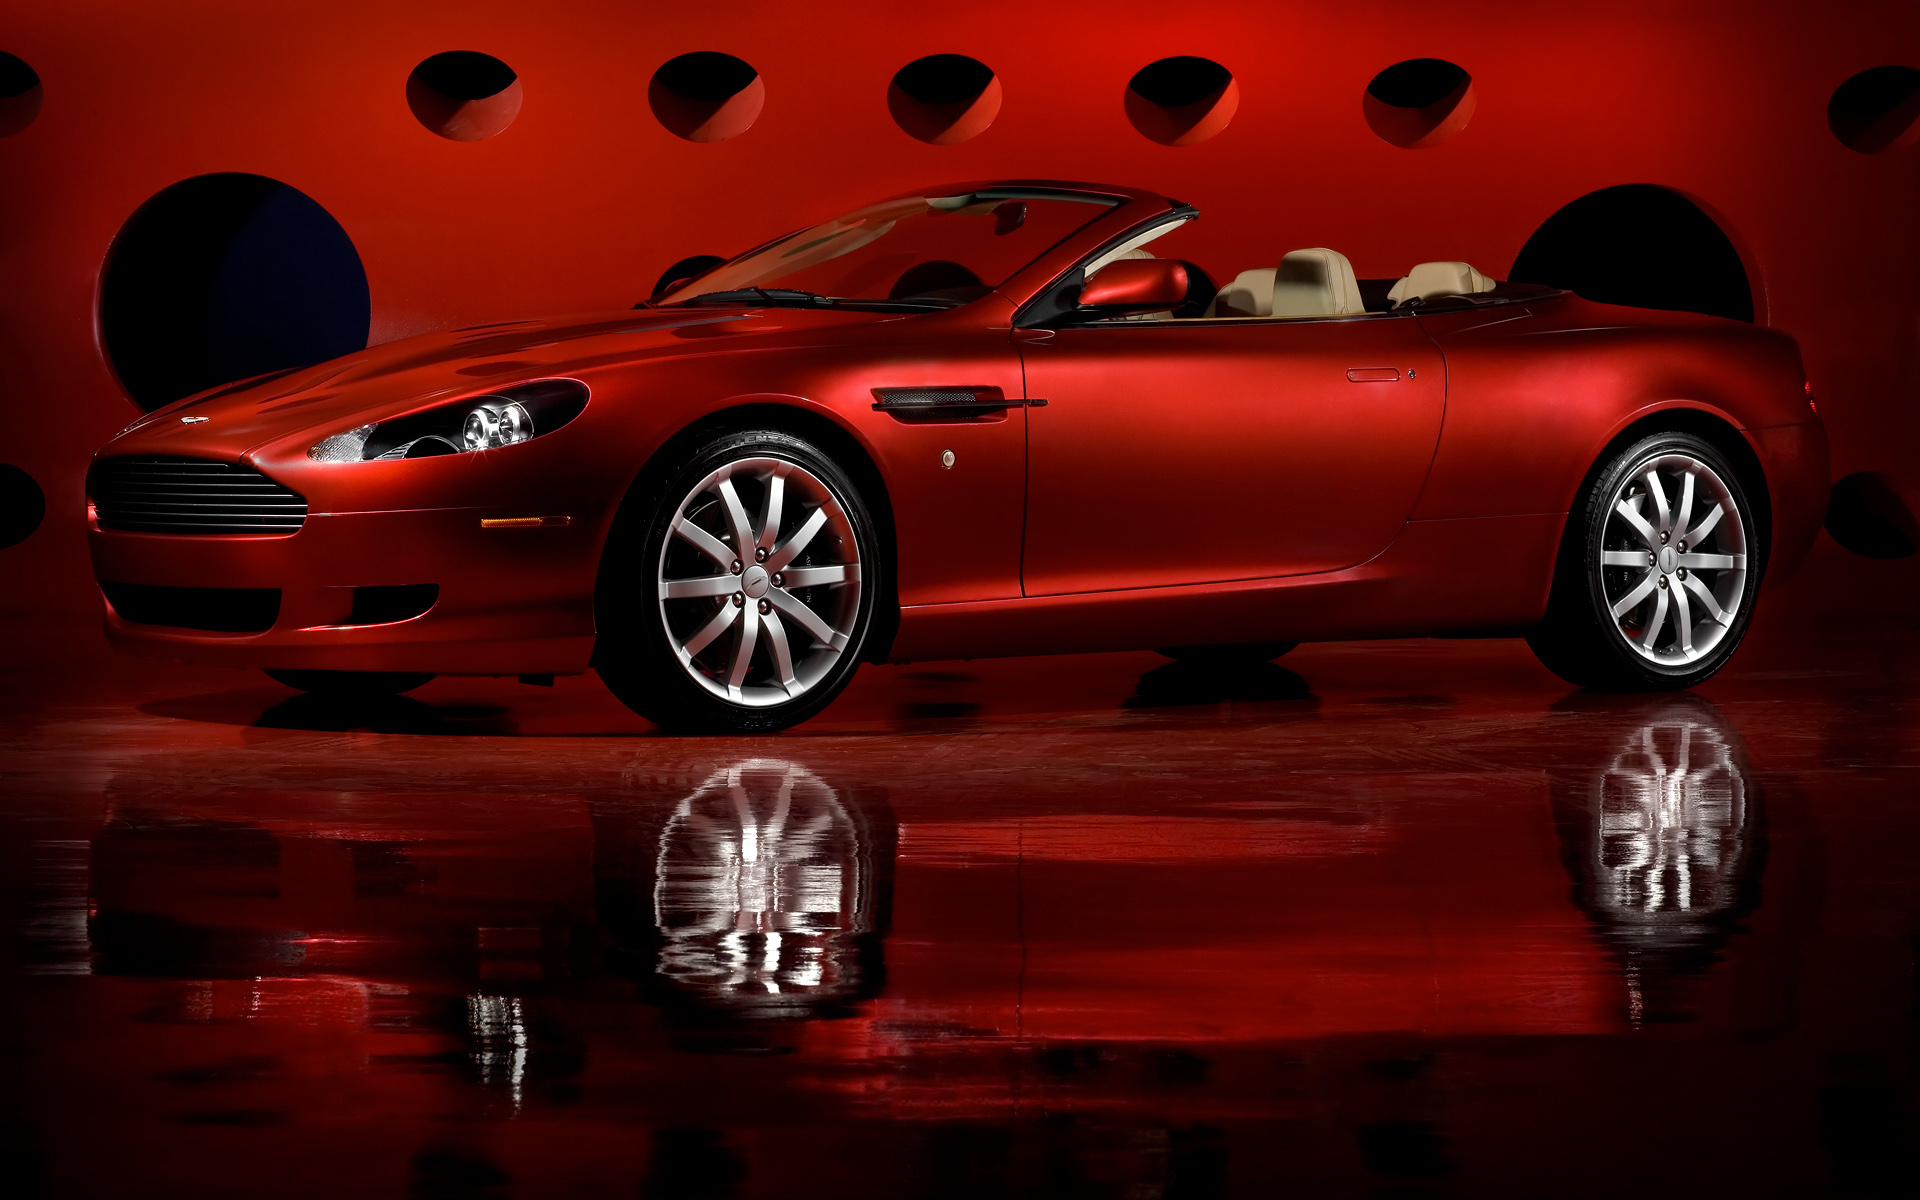 Aston Martin Campaign by Automotive Photographer